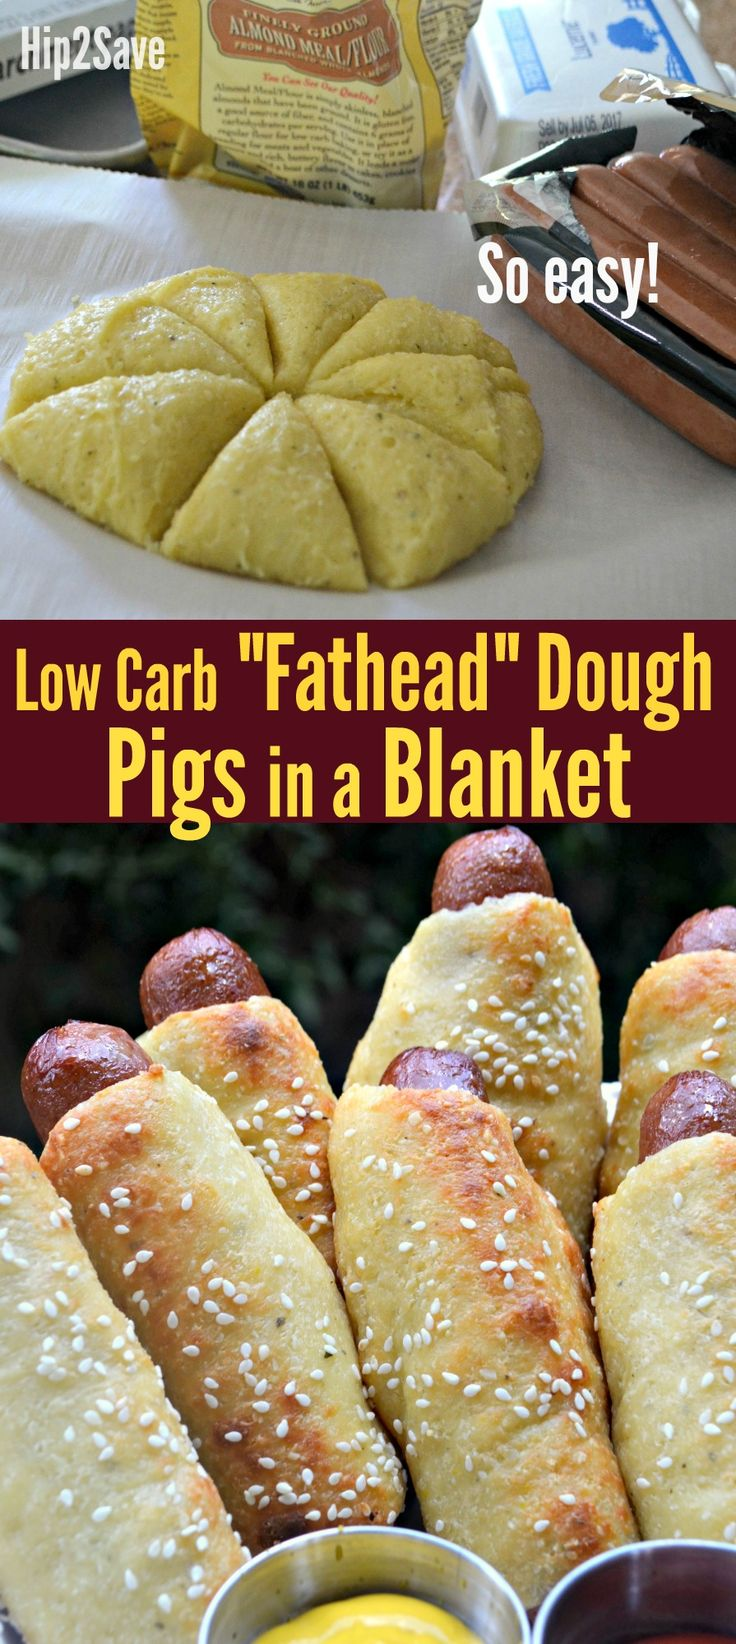 low carb fathead dough pigs in a blanket recipe decarbed keto low carb low carb recipes. Black Bedroom Furniture Sets. Home Design Ideas